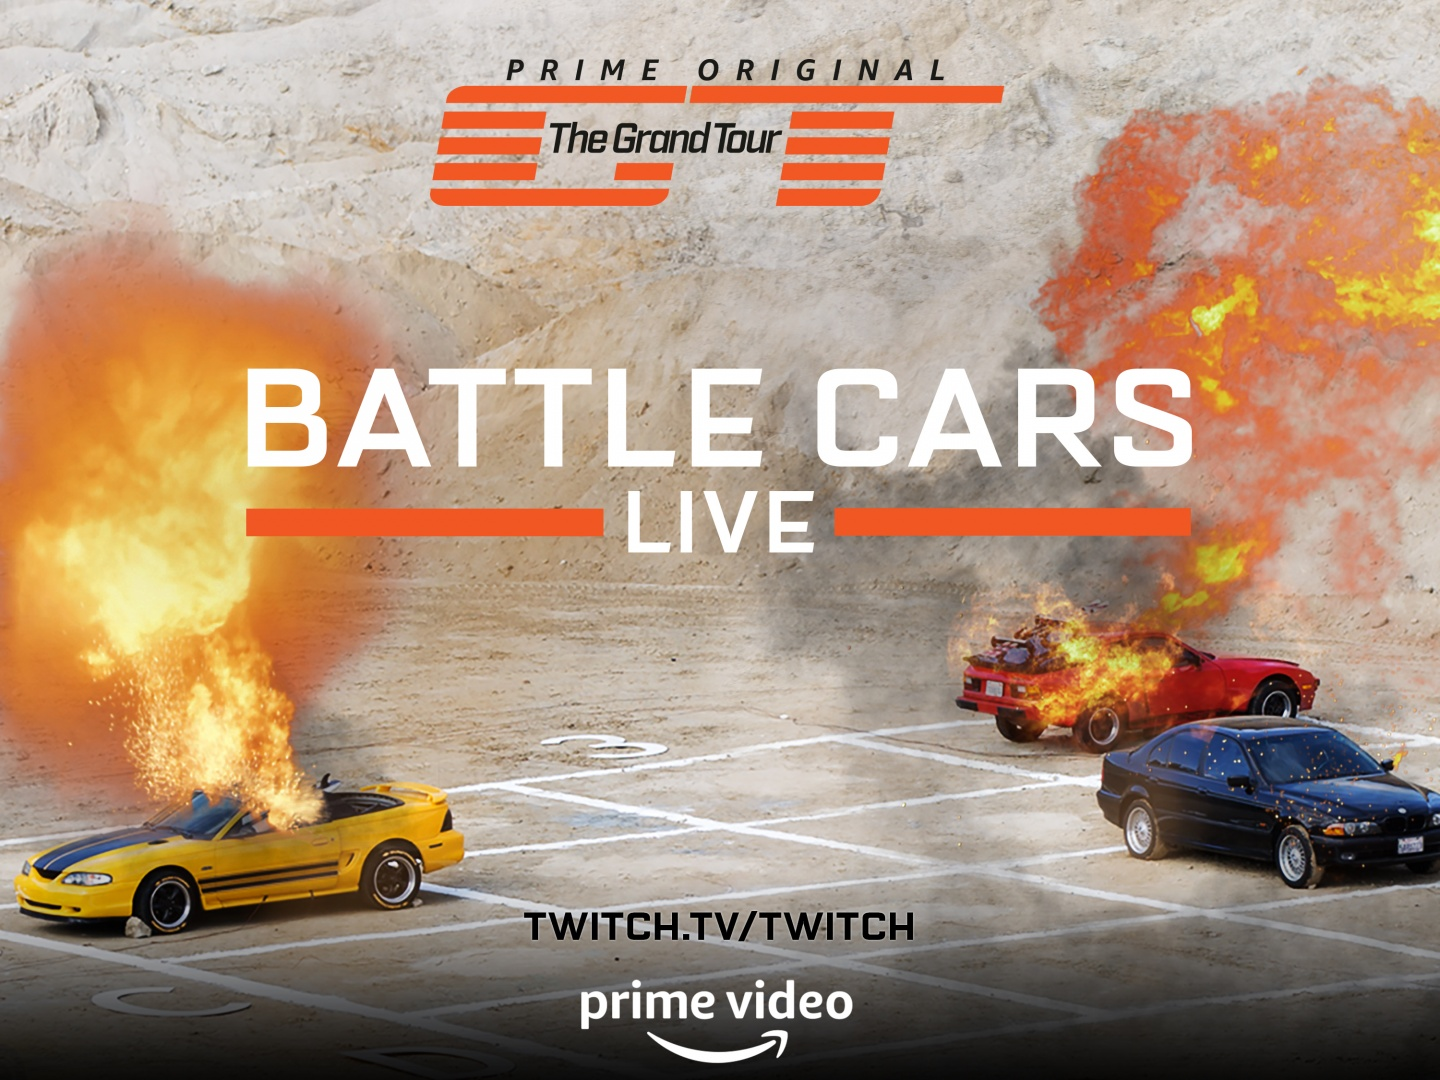 The Grand Tour Season 2: Battle Cars Live Thumbnail